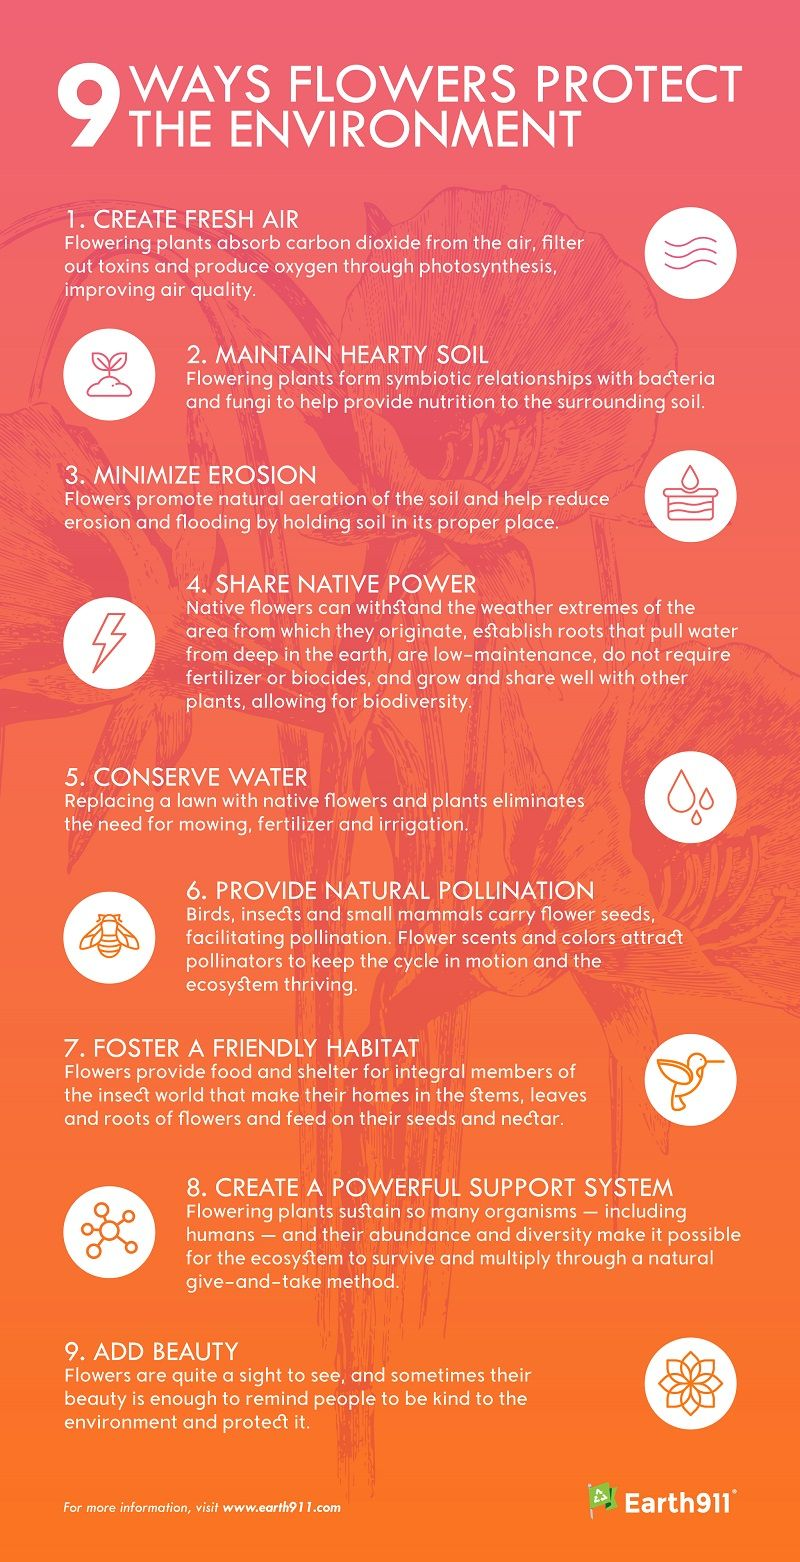 Infographic: 9 Ways Flowers Protect the Environment - Earth911.com